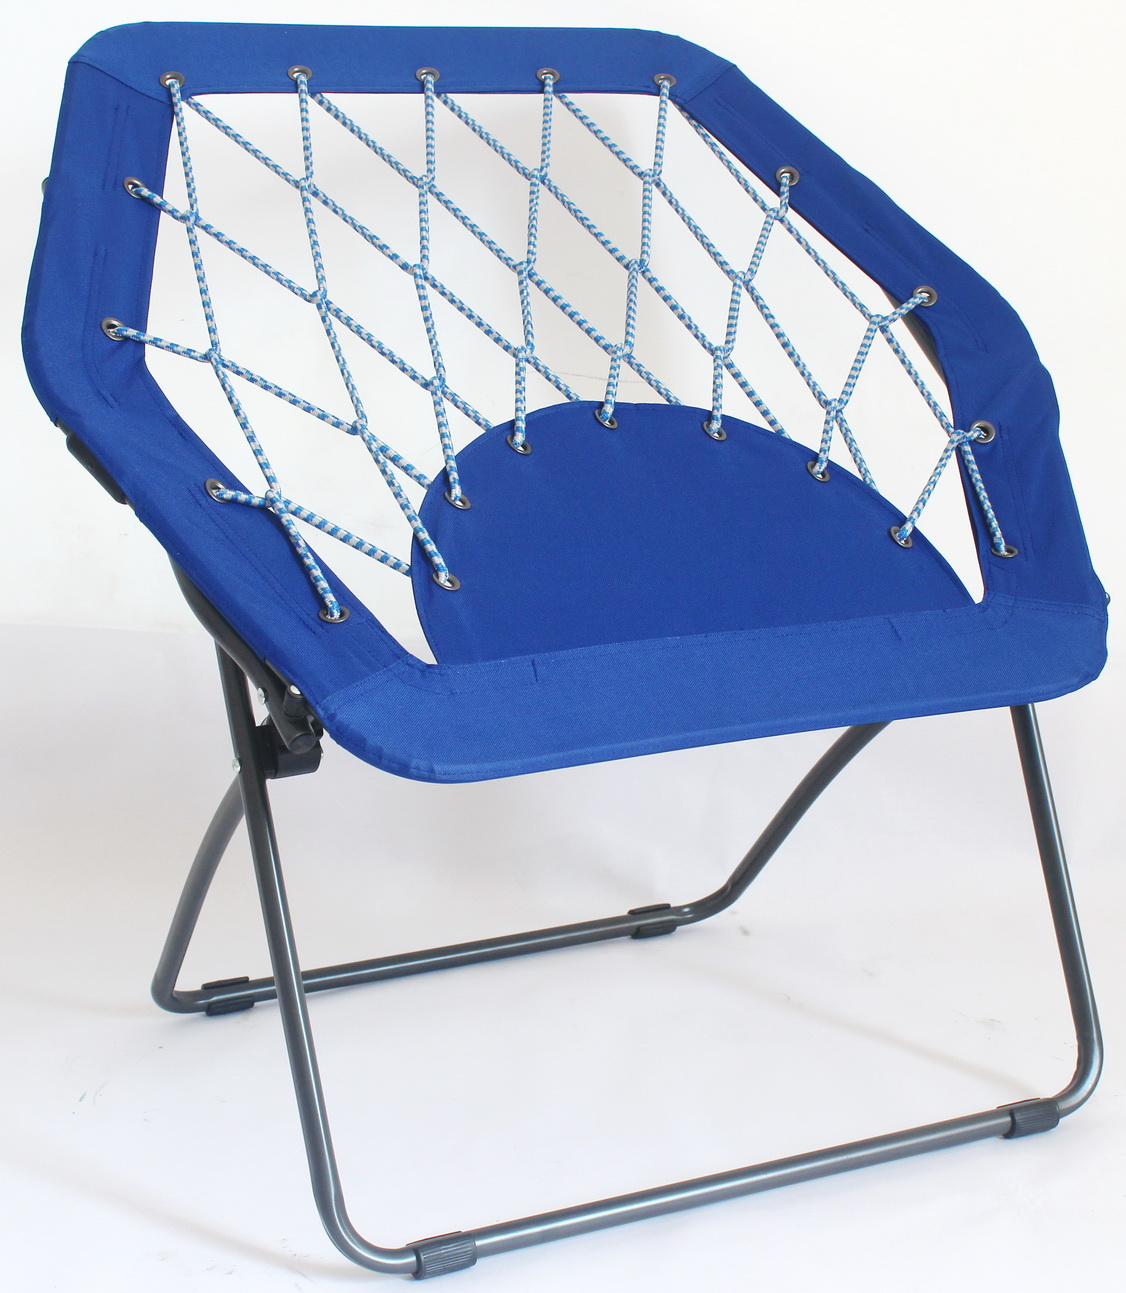 Bungi Chair Hex Bungee Chair Blue